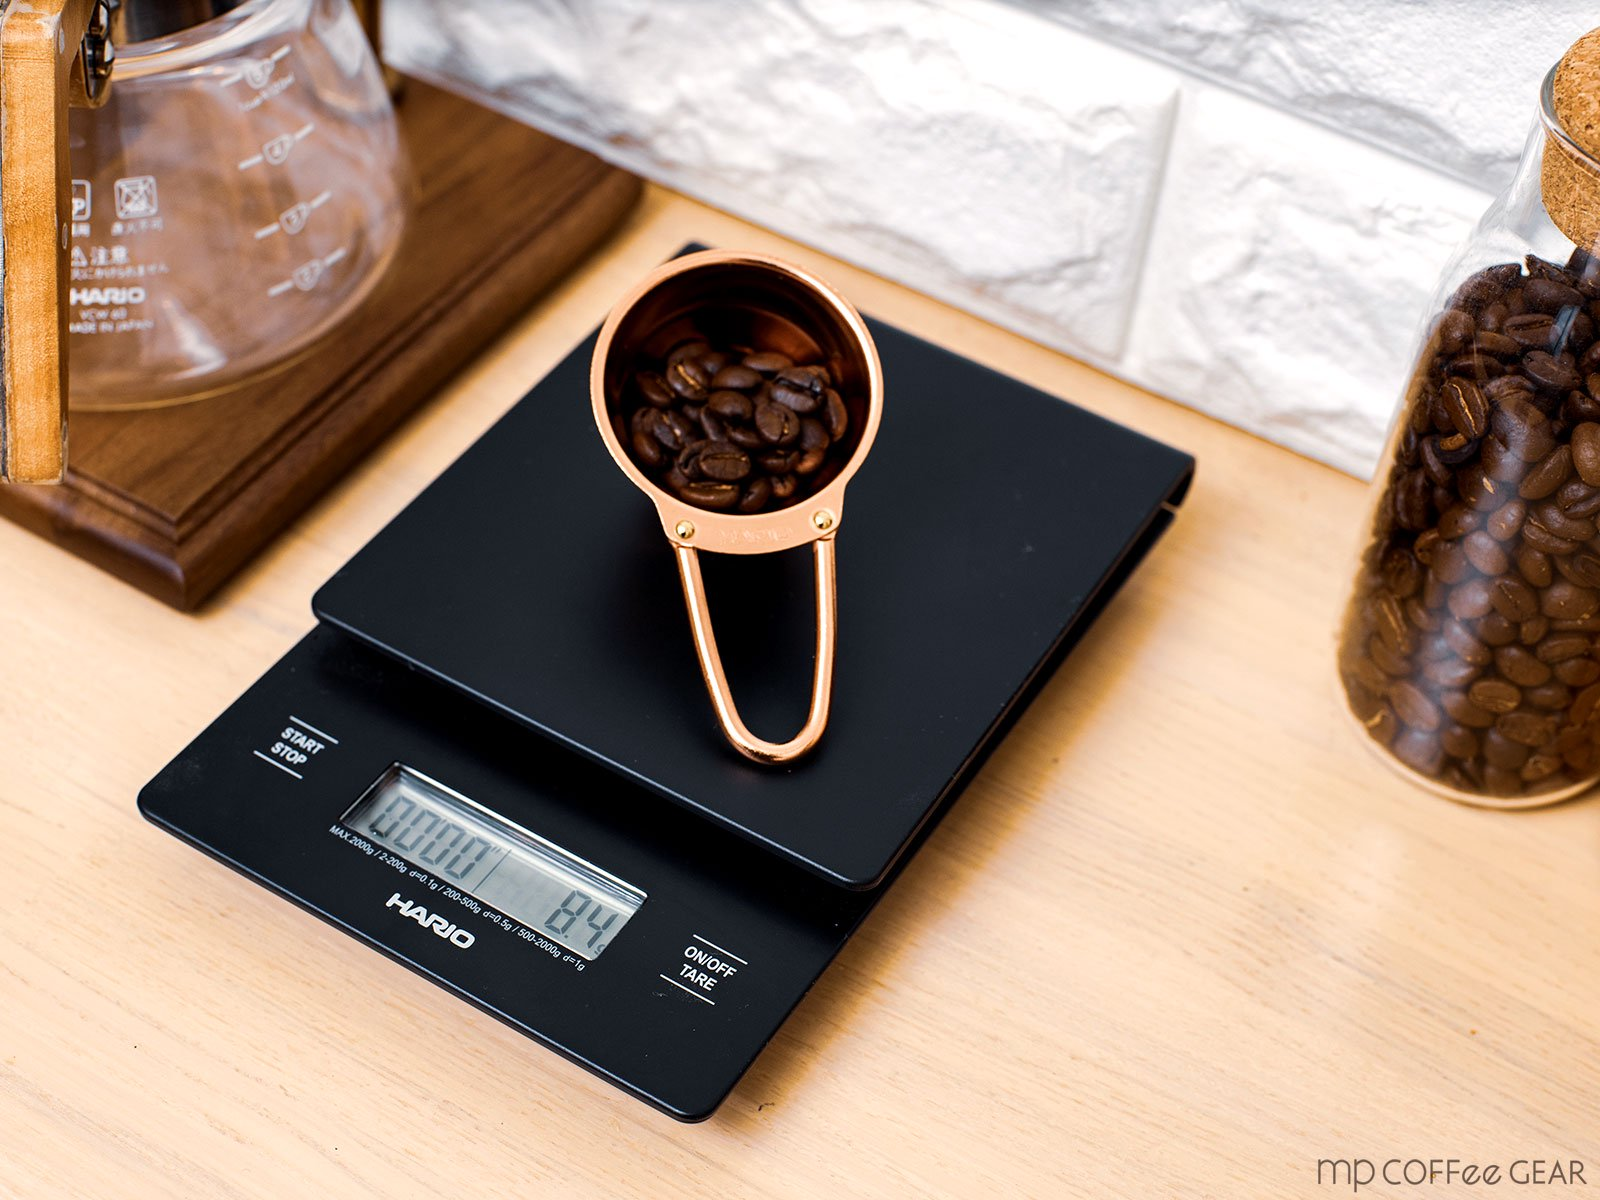 mp coffee gear HARIO V60 ドリップスケール